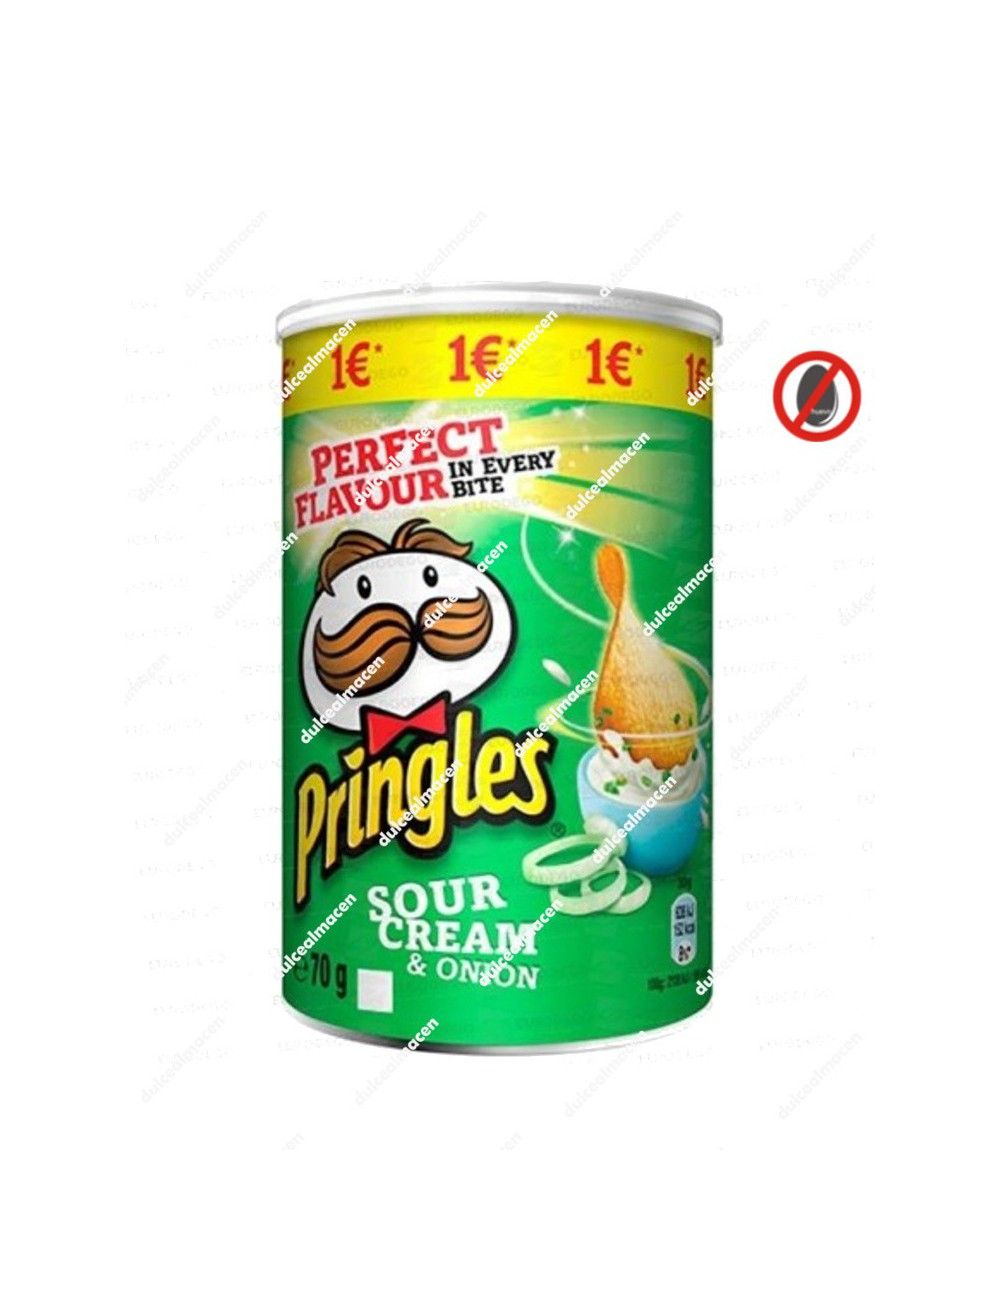 Pringles sour cream onion lata mediana